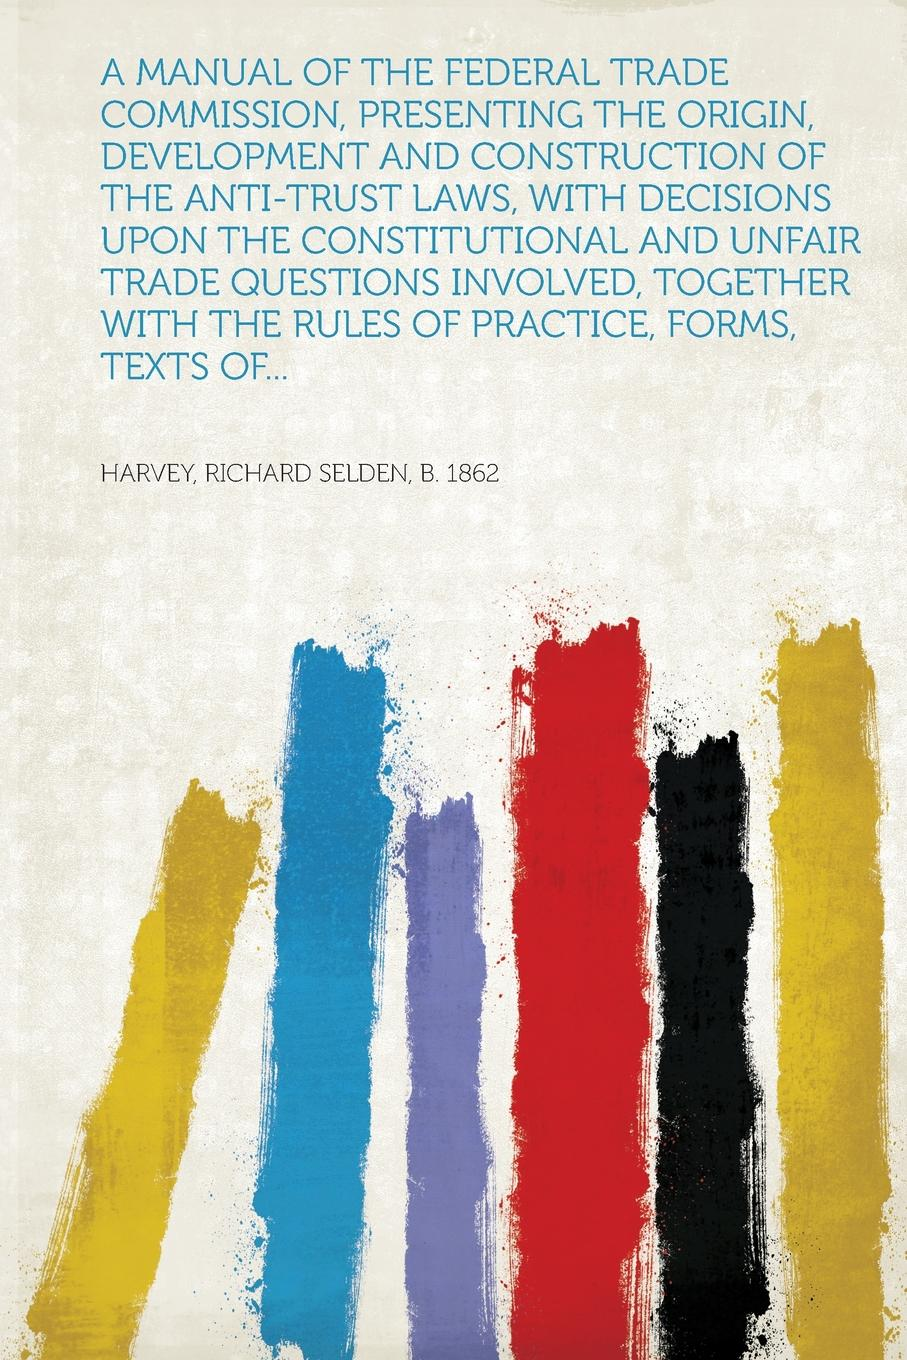 A Manual of the Federal Trade Commission, Presenting the Origin, Development and Construction of the Anti-Trust Laws, With Decisions Upon the Constitutional and Unfair Trade Questions Involved, Together With the Rules of Practice, Forms, Texts of...